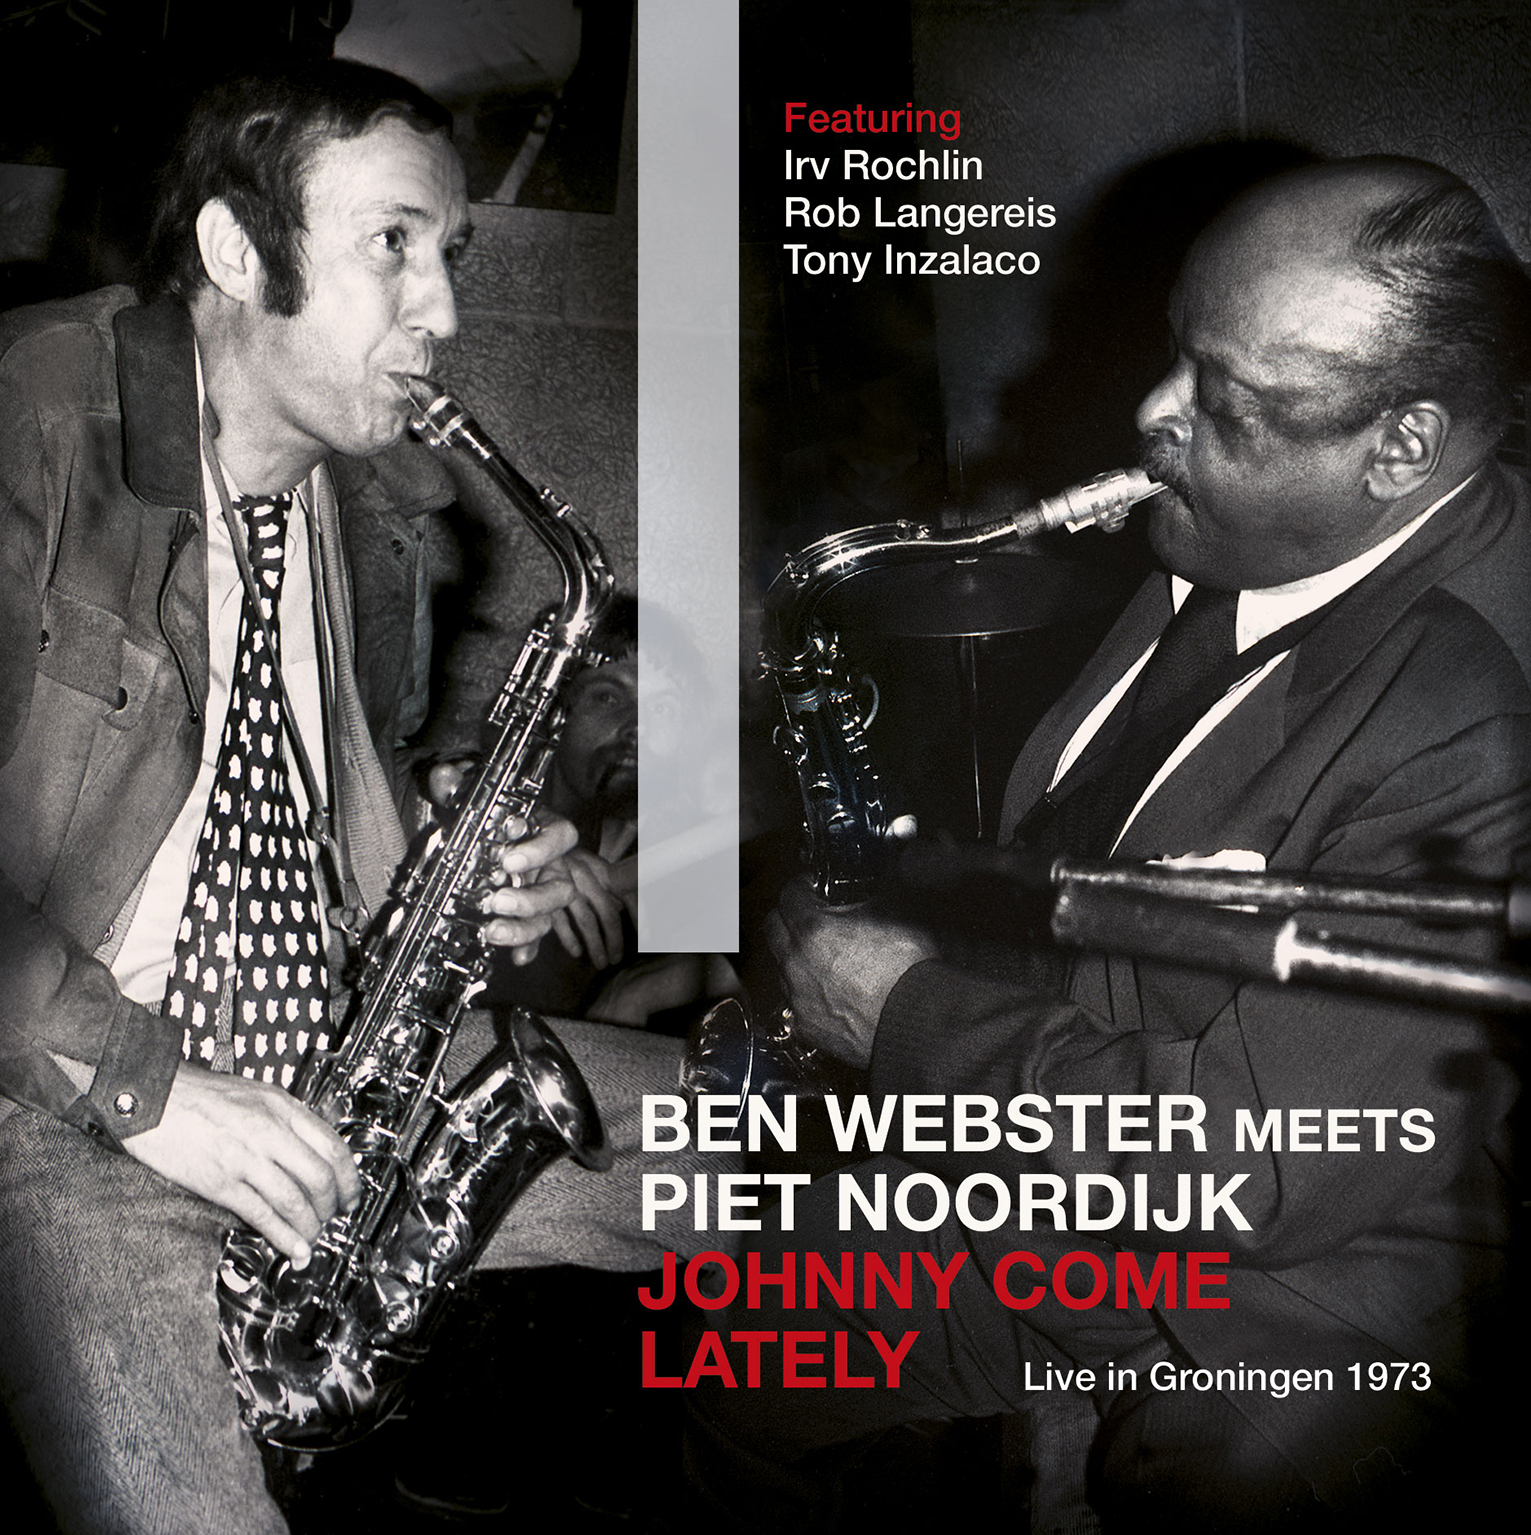 Ben Webster Meets Piet Noordijk - Johnny Come Lately